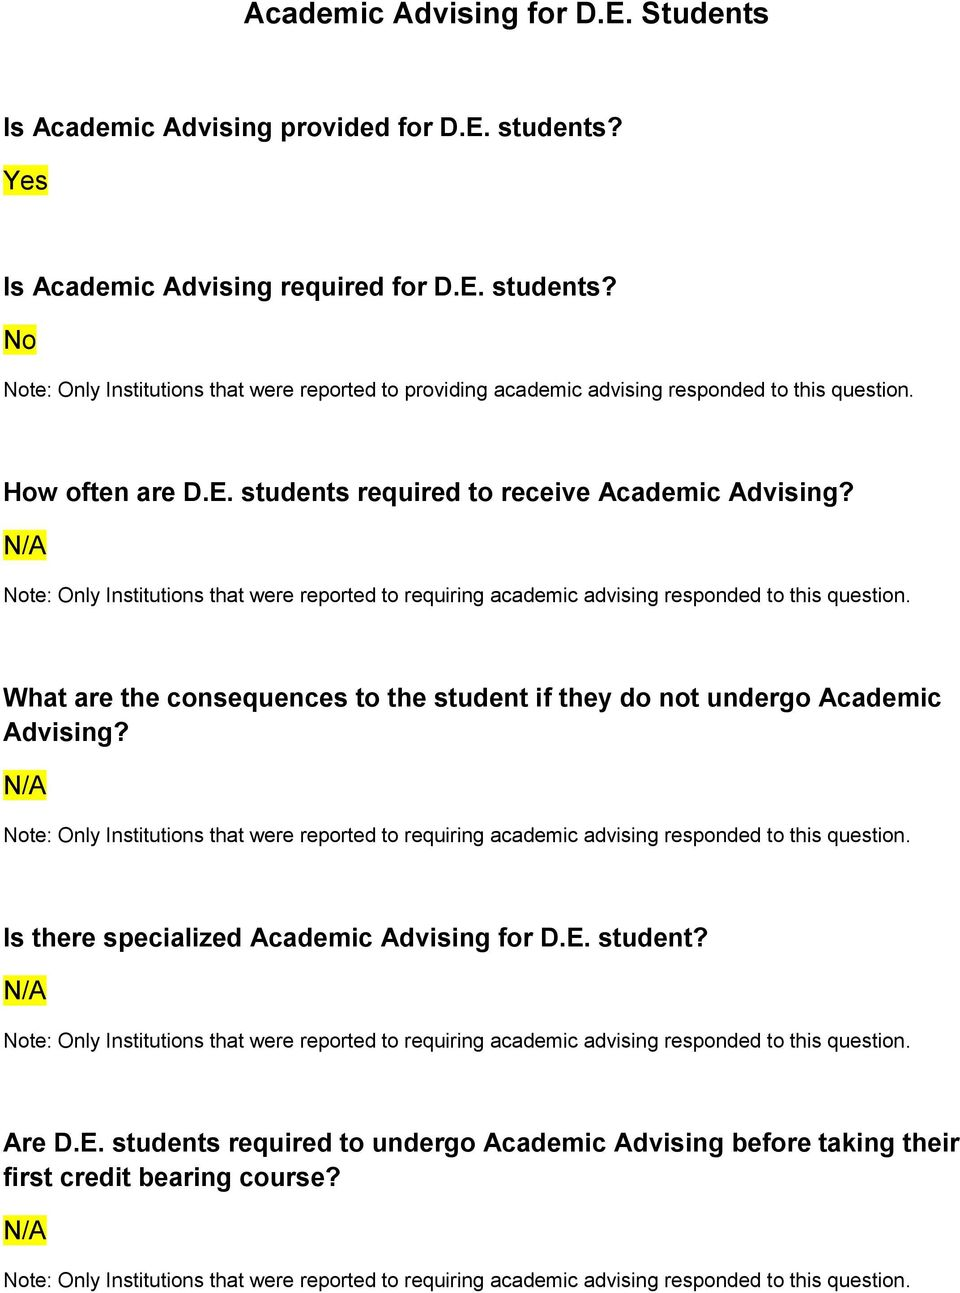 What are the consequences to the student if they do not undergo Academic Advising? N/A te: Only Institutions that were reported to requiring academic advising responded to this question.